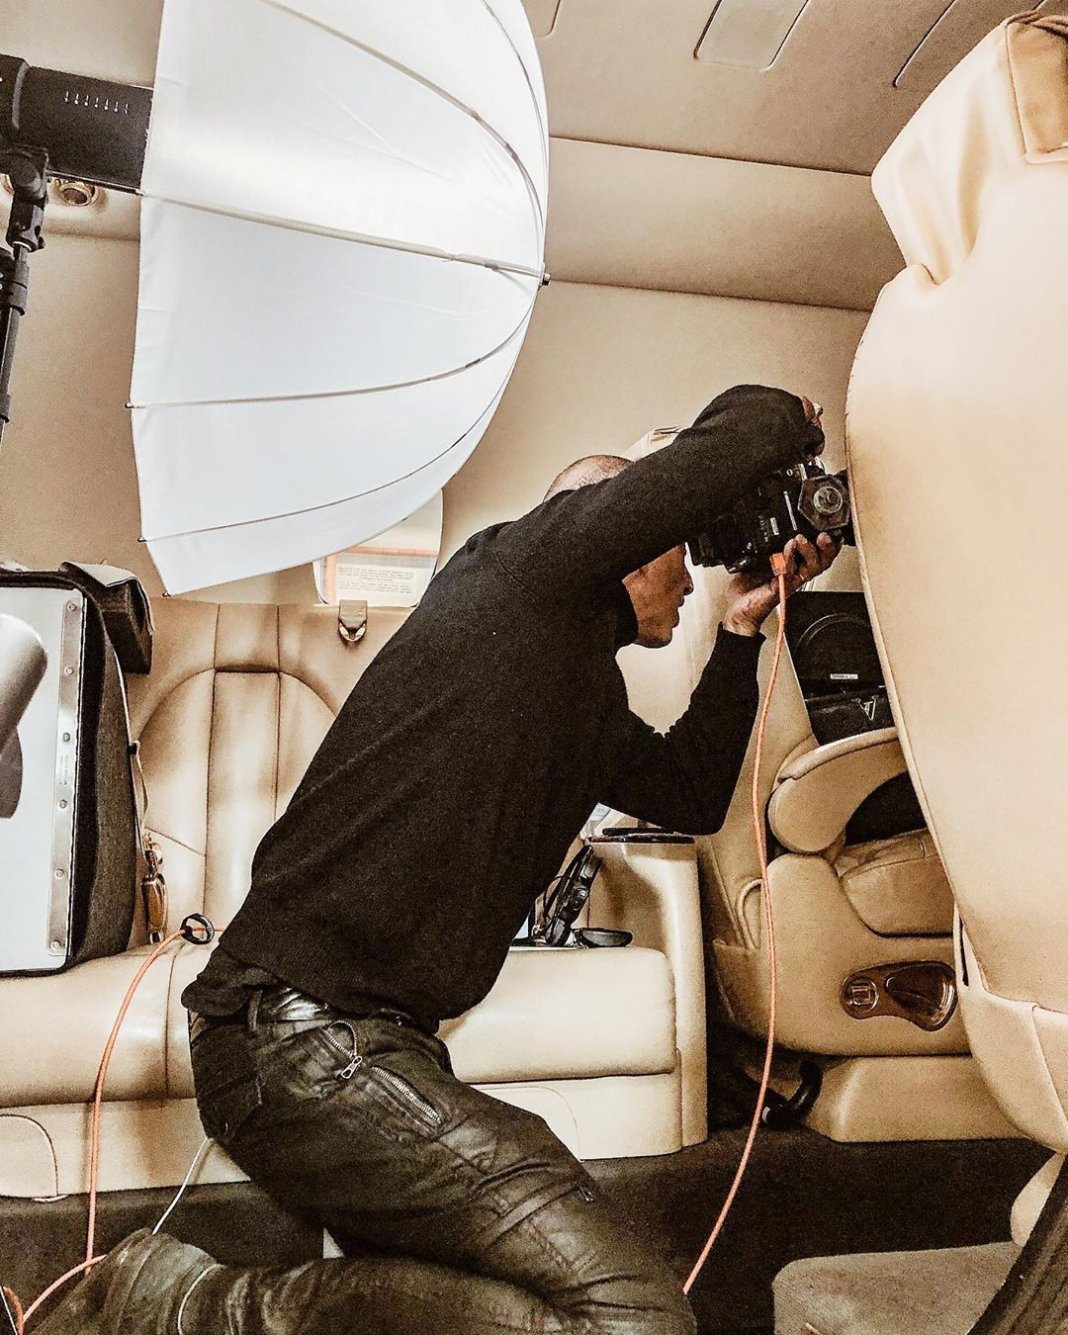 For this cover of @robbreportse my Profoto C1 Plus was a life saviour! It would ...